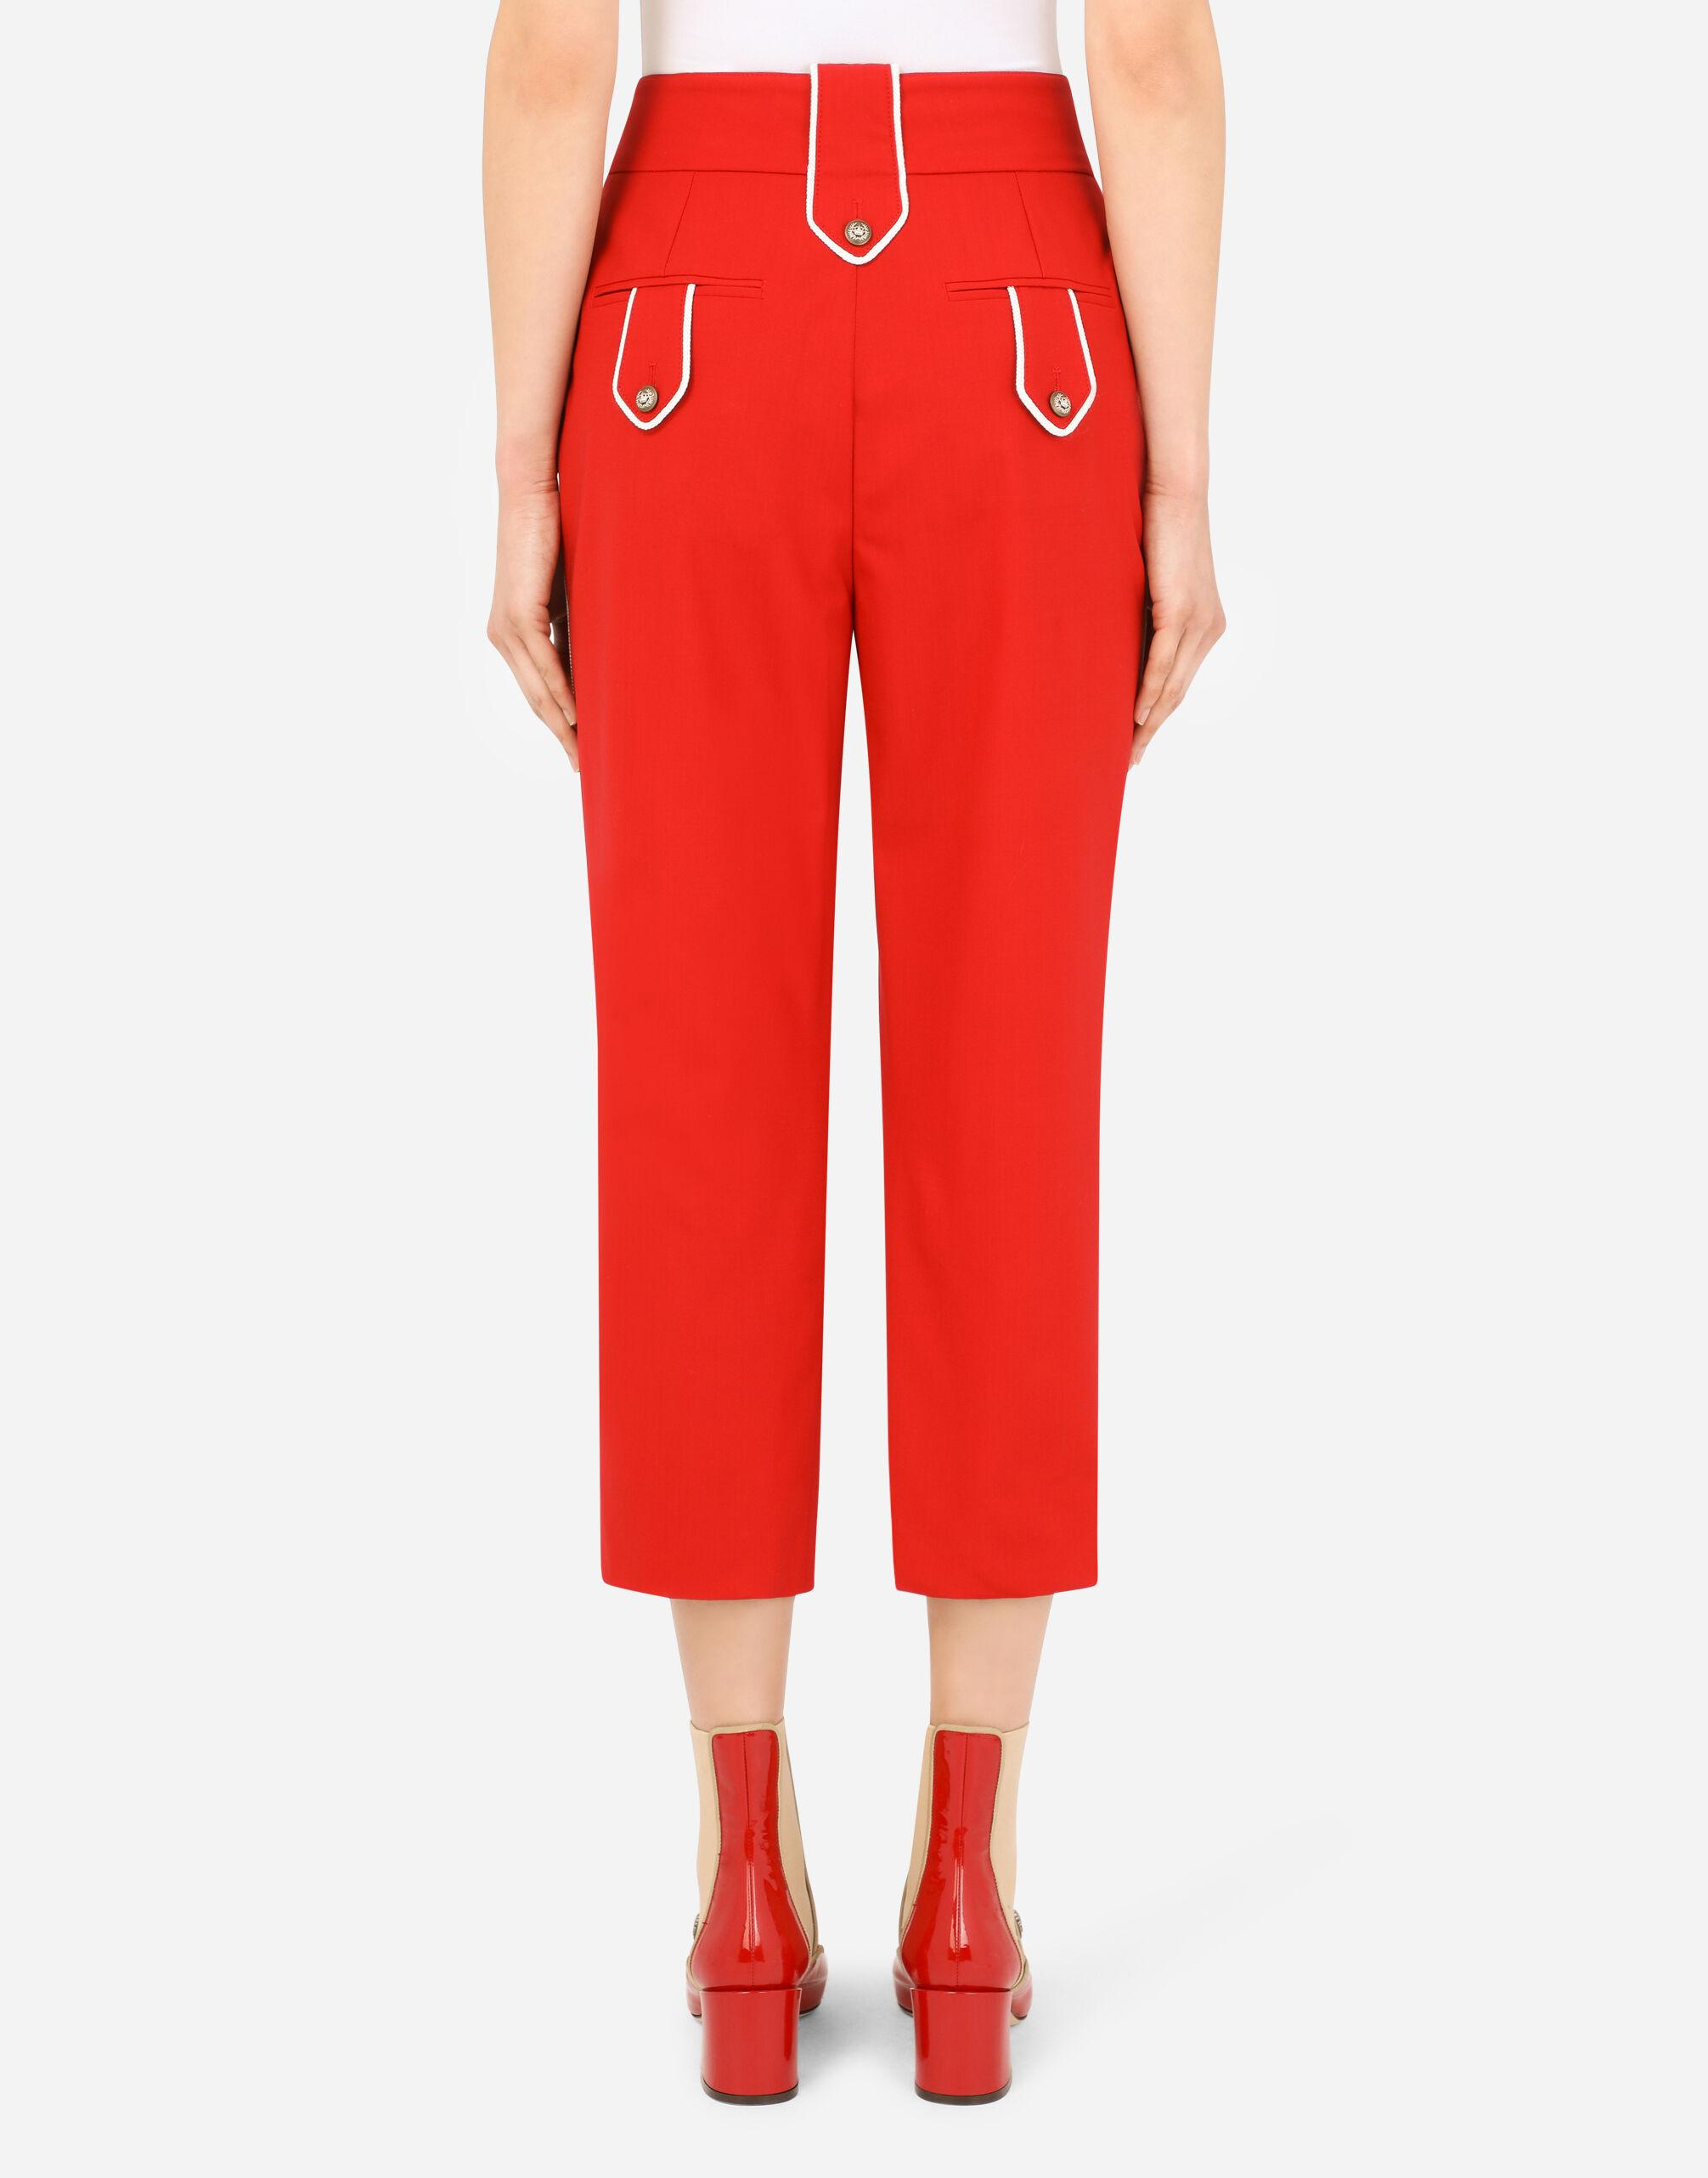 High-waisted woolen pants with heraldic buttons 1